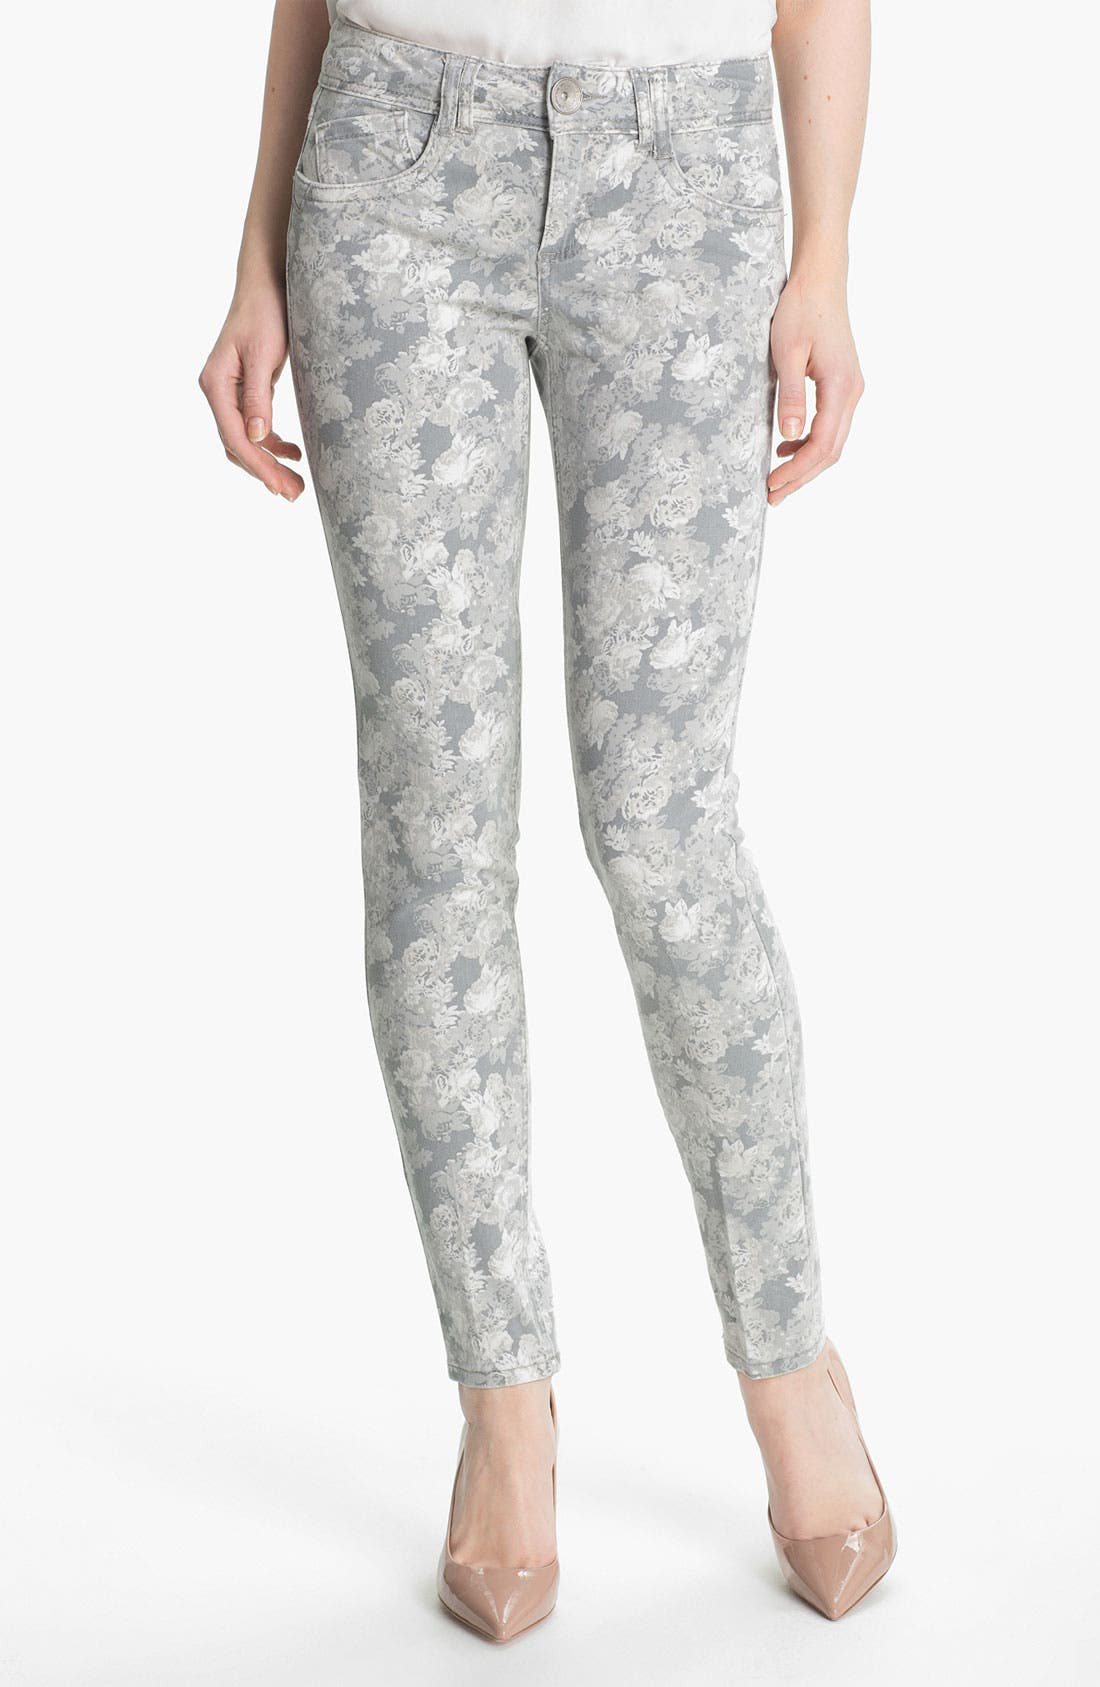 Alternate Image 1 Selected - Wit & Wisdom Floral Print Skinny Jeans (Nordstrom Exclusive)